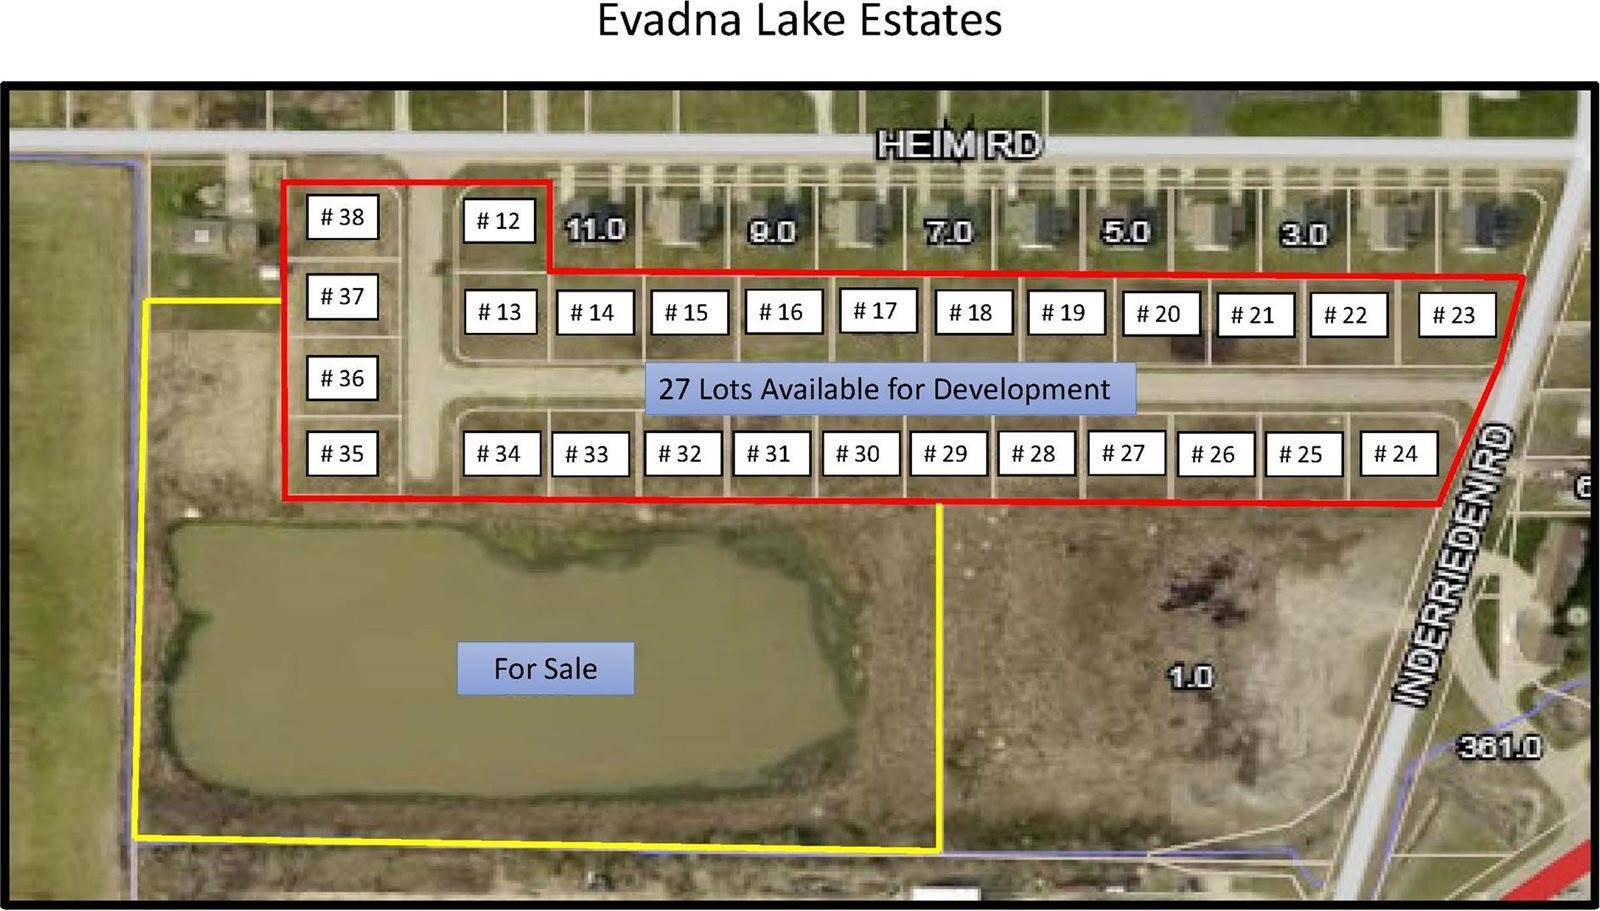 102 Evadna Drive, Lot 36, Boonville, IN 47610